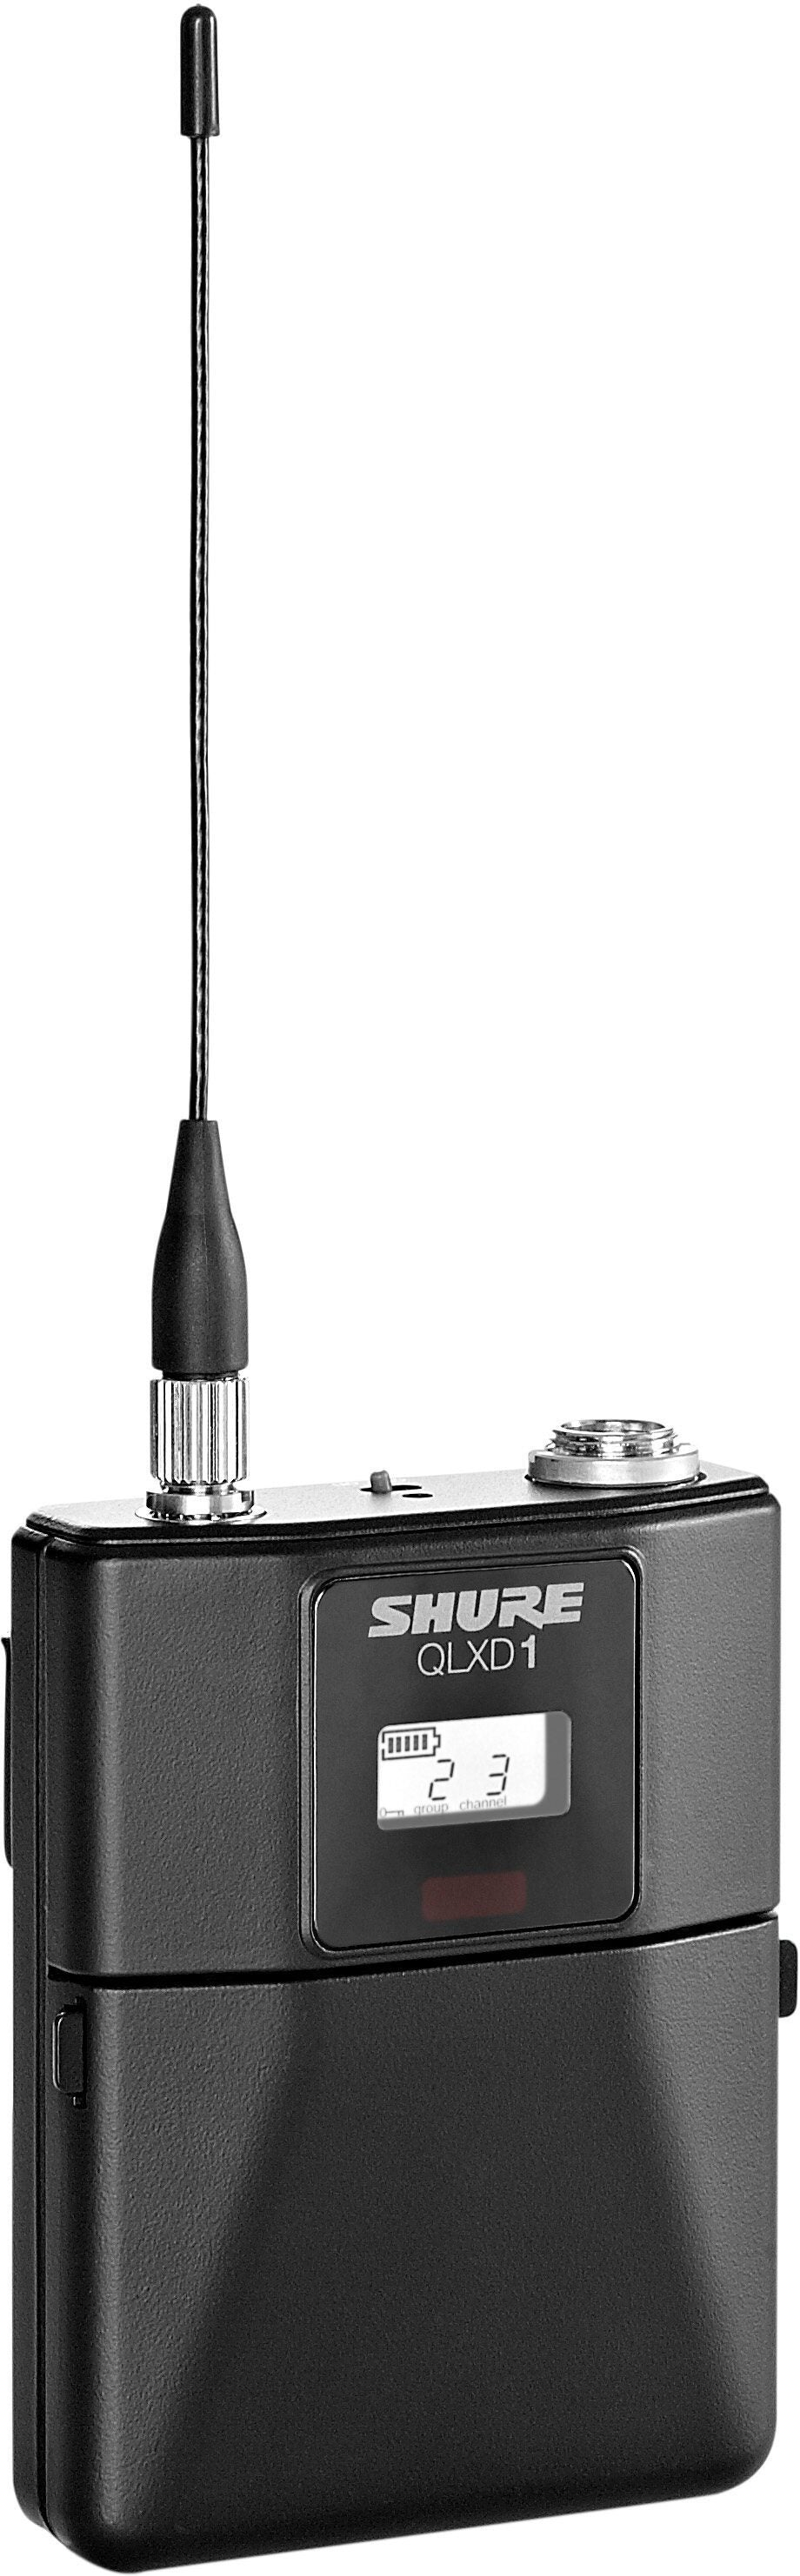 Shure QLXD1484 Wireless System with WL184 Lavalier Microphone, Band G50 (470 - 534 MHz)